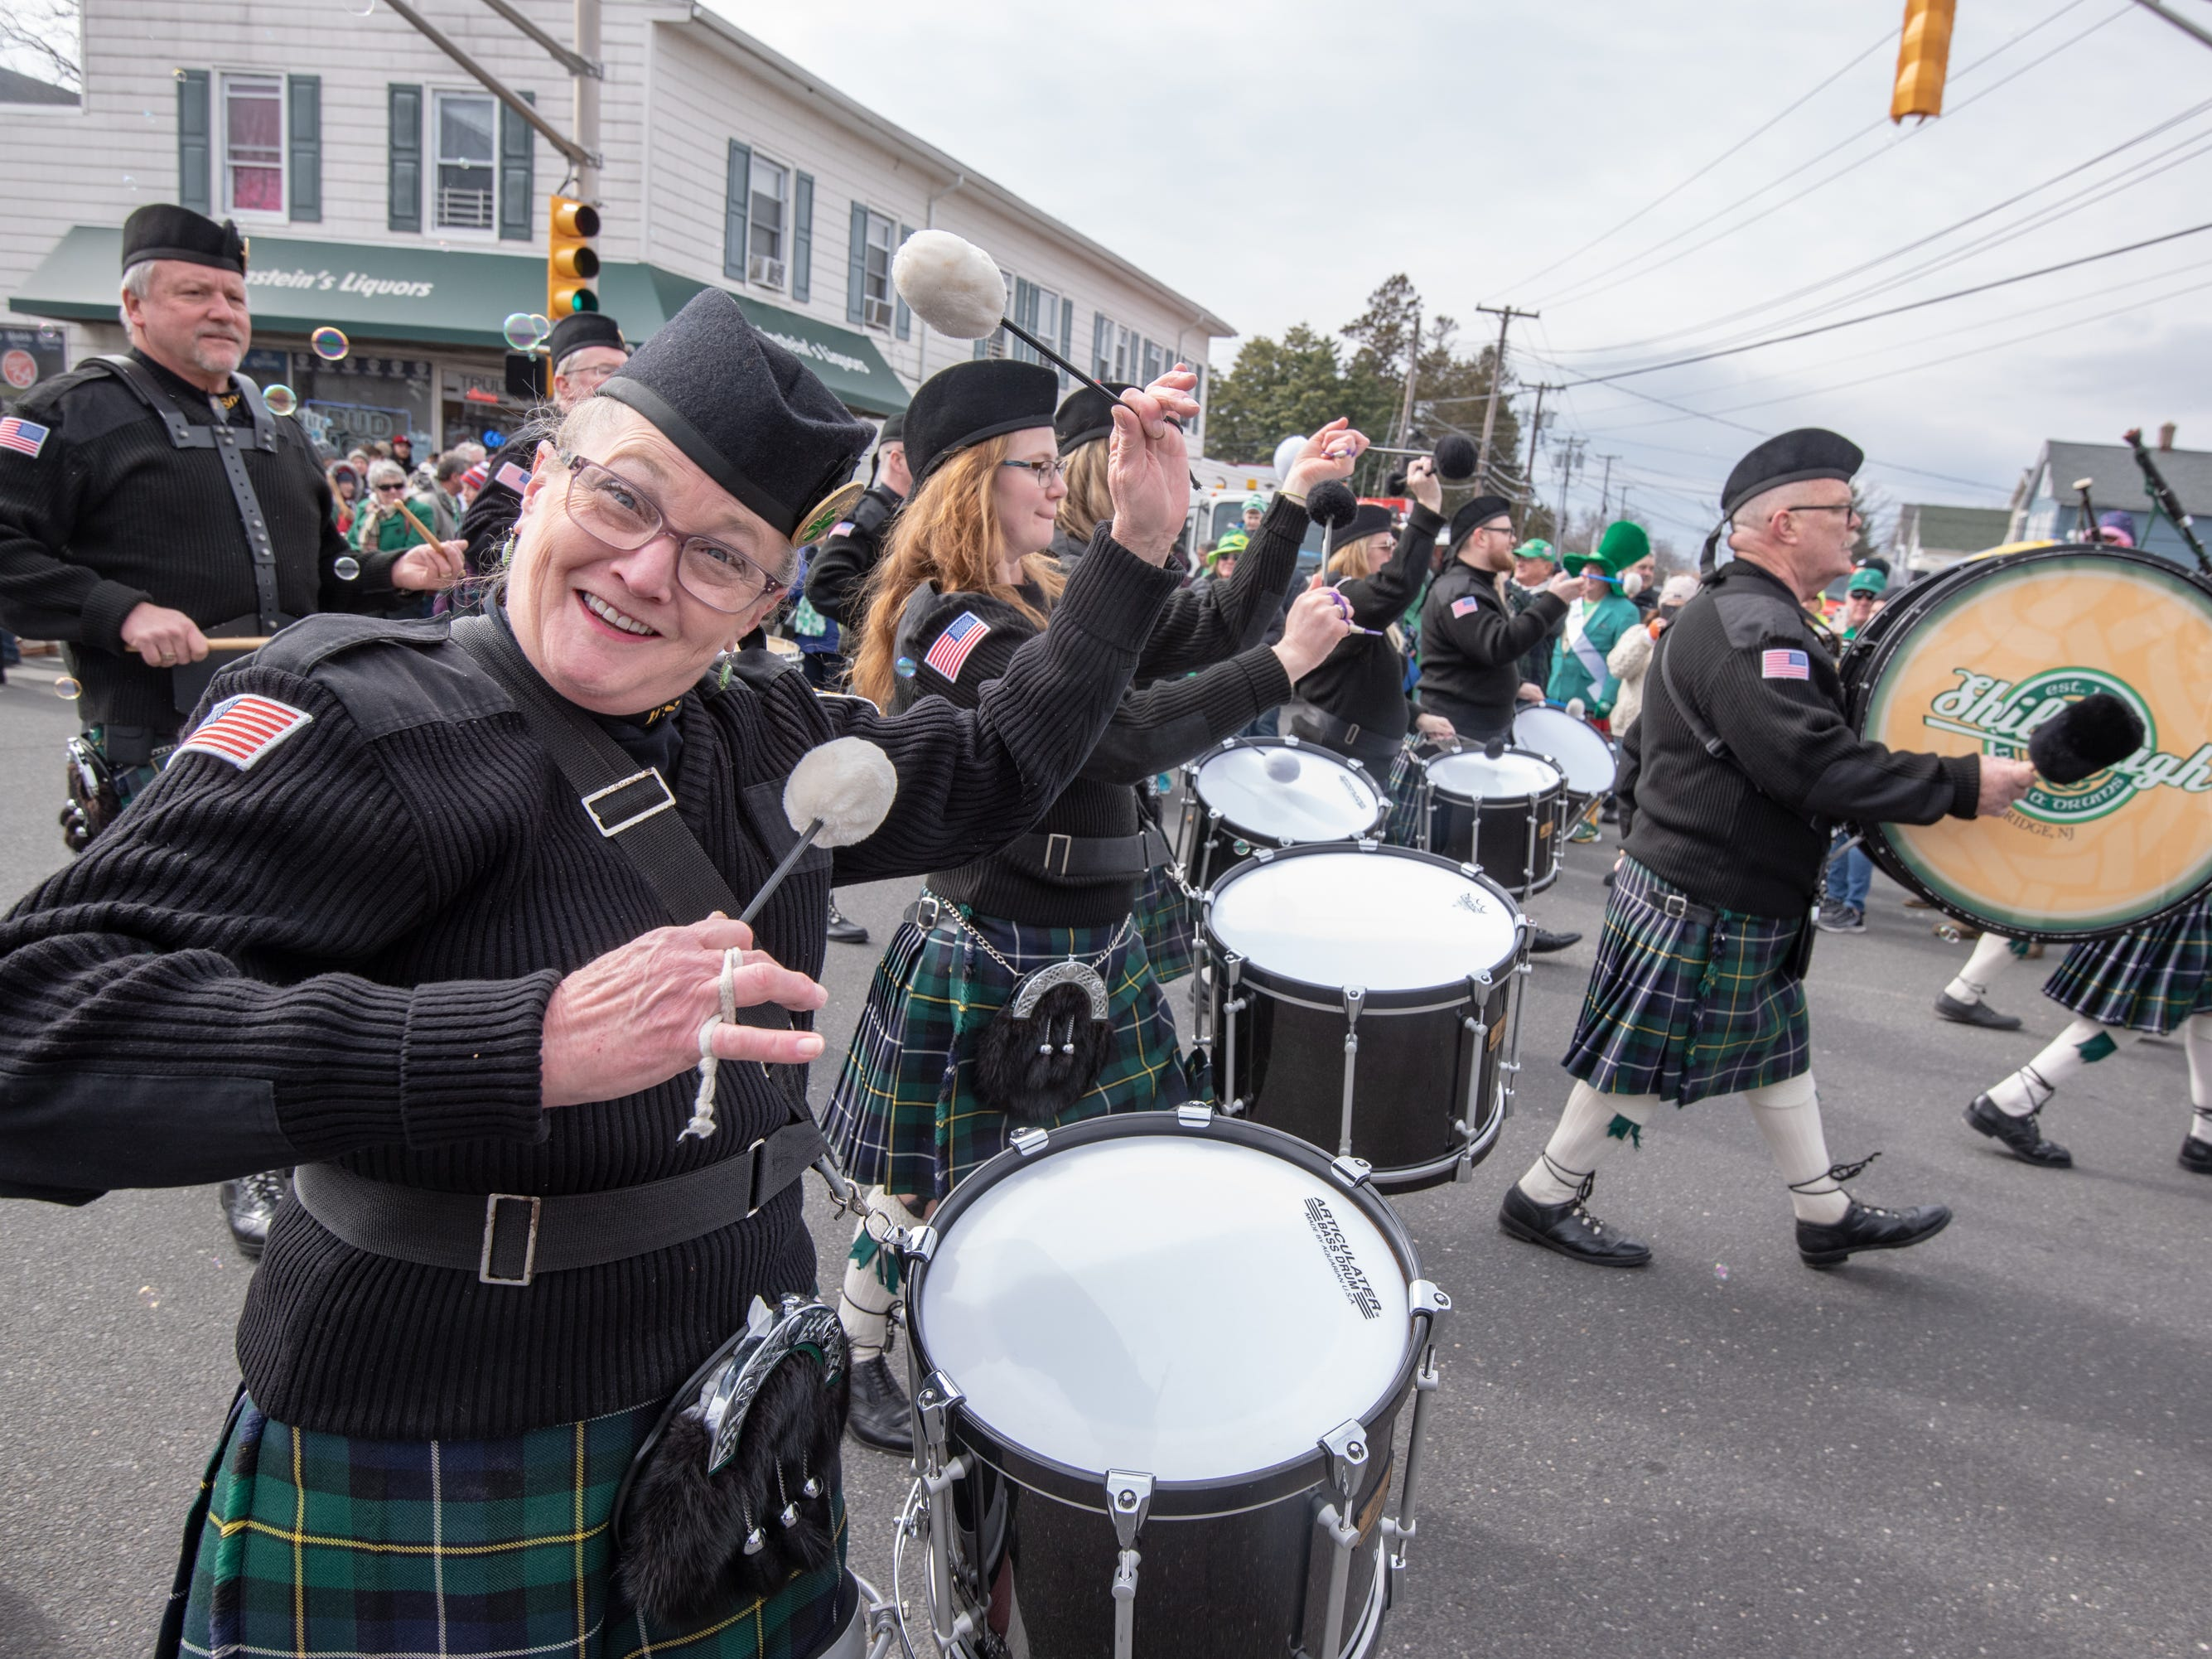 A drummer from the  Pipes and Drums of the  Friendly Sons of the Shillelagh, Old Bridge, smiles for the camera. The 46th annual Belmar/Lake Como St. Patrick's Day Parade was held in Belmar on March 3, 2019.